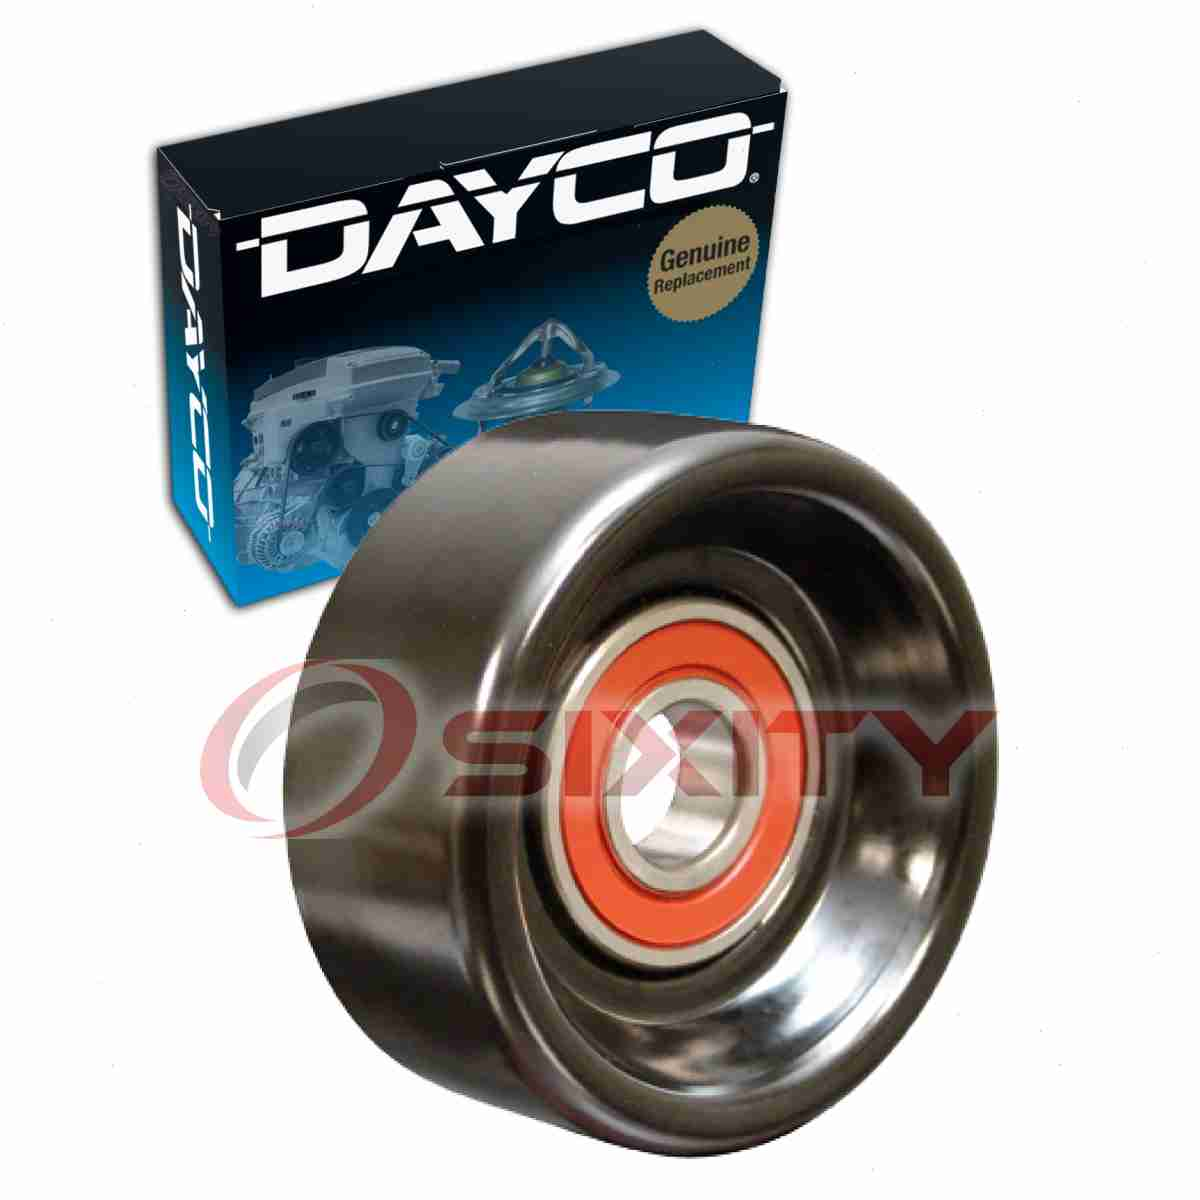 Dayco Drive Belt Pulley For 19882002 Chevrolet Camaro 38l V6 57l. If You Are Looking For A Quality Replacement Your Worn Serpentine Or V Belt Tensioner Pulley Turn To Dayco Developed And Designed Using. Chevrolet. Serpentine Belt Diagram 2002 Chevy Camaro At Scoala.co